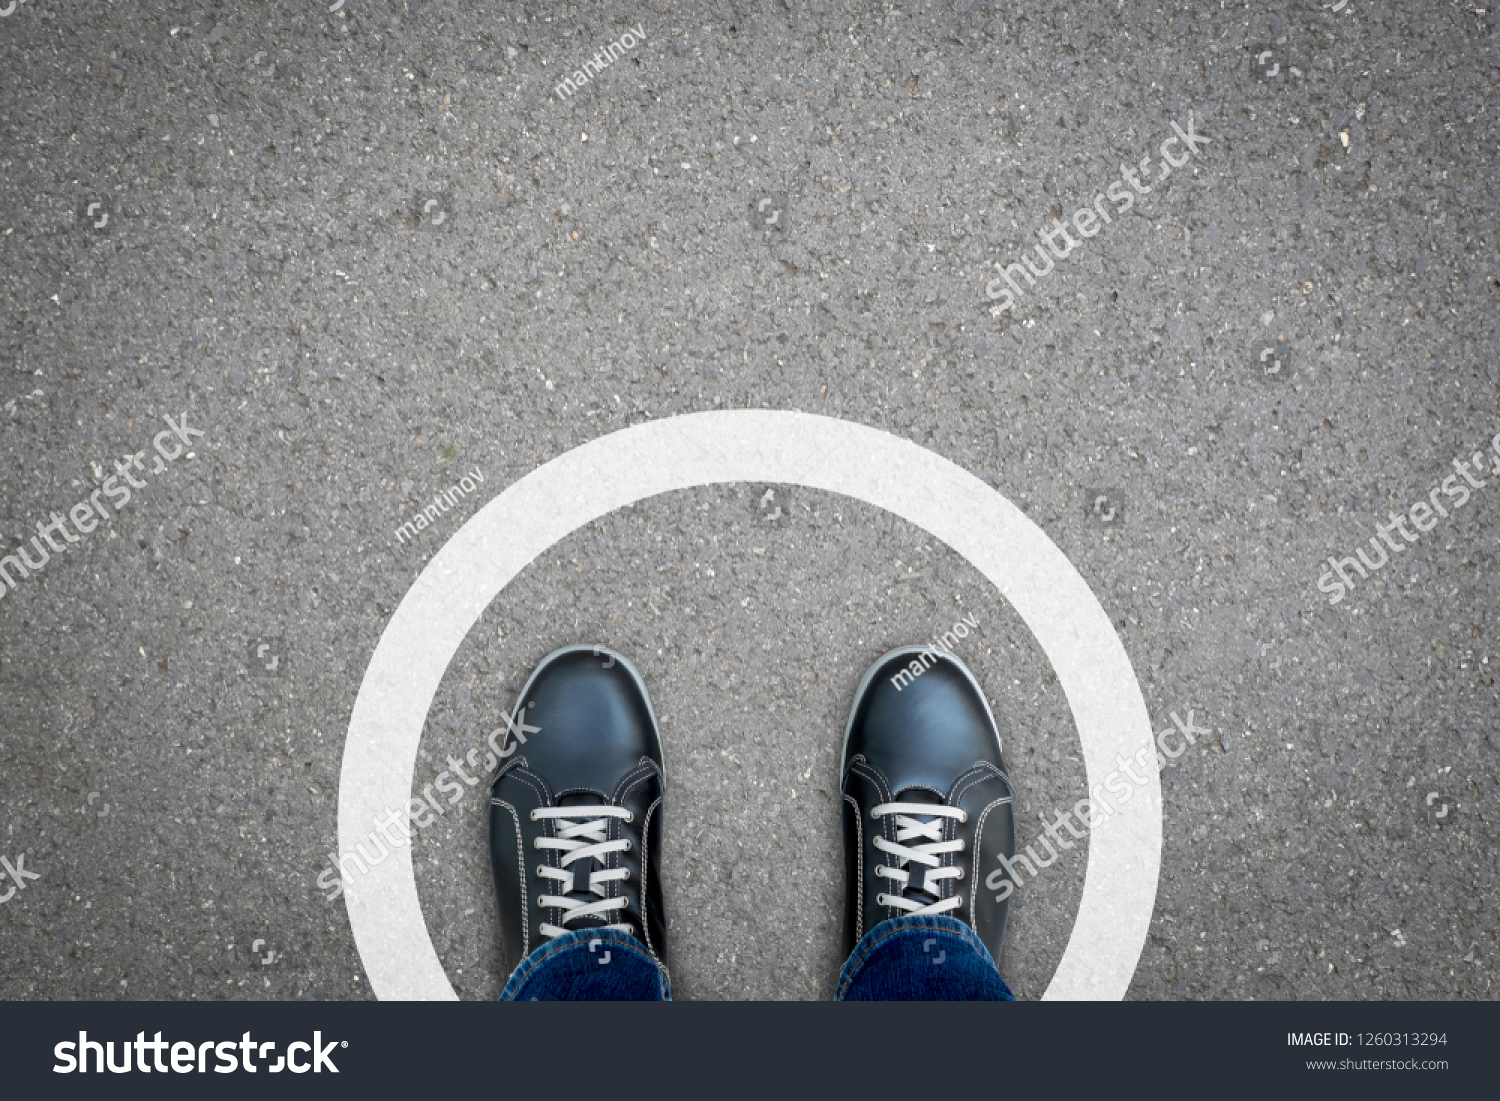 Black shoes standing in white circle on the asphalt concrete floor. Concept of limit, boundary, frame, etc. #1260313294